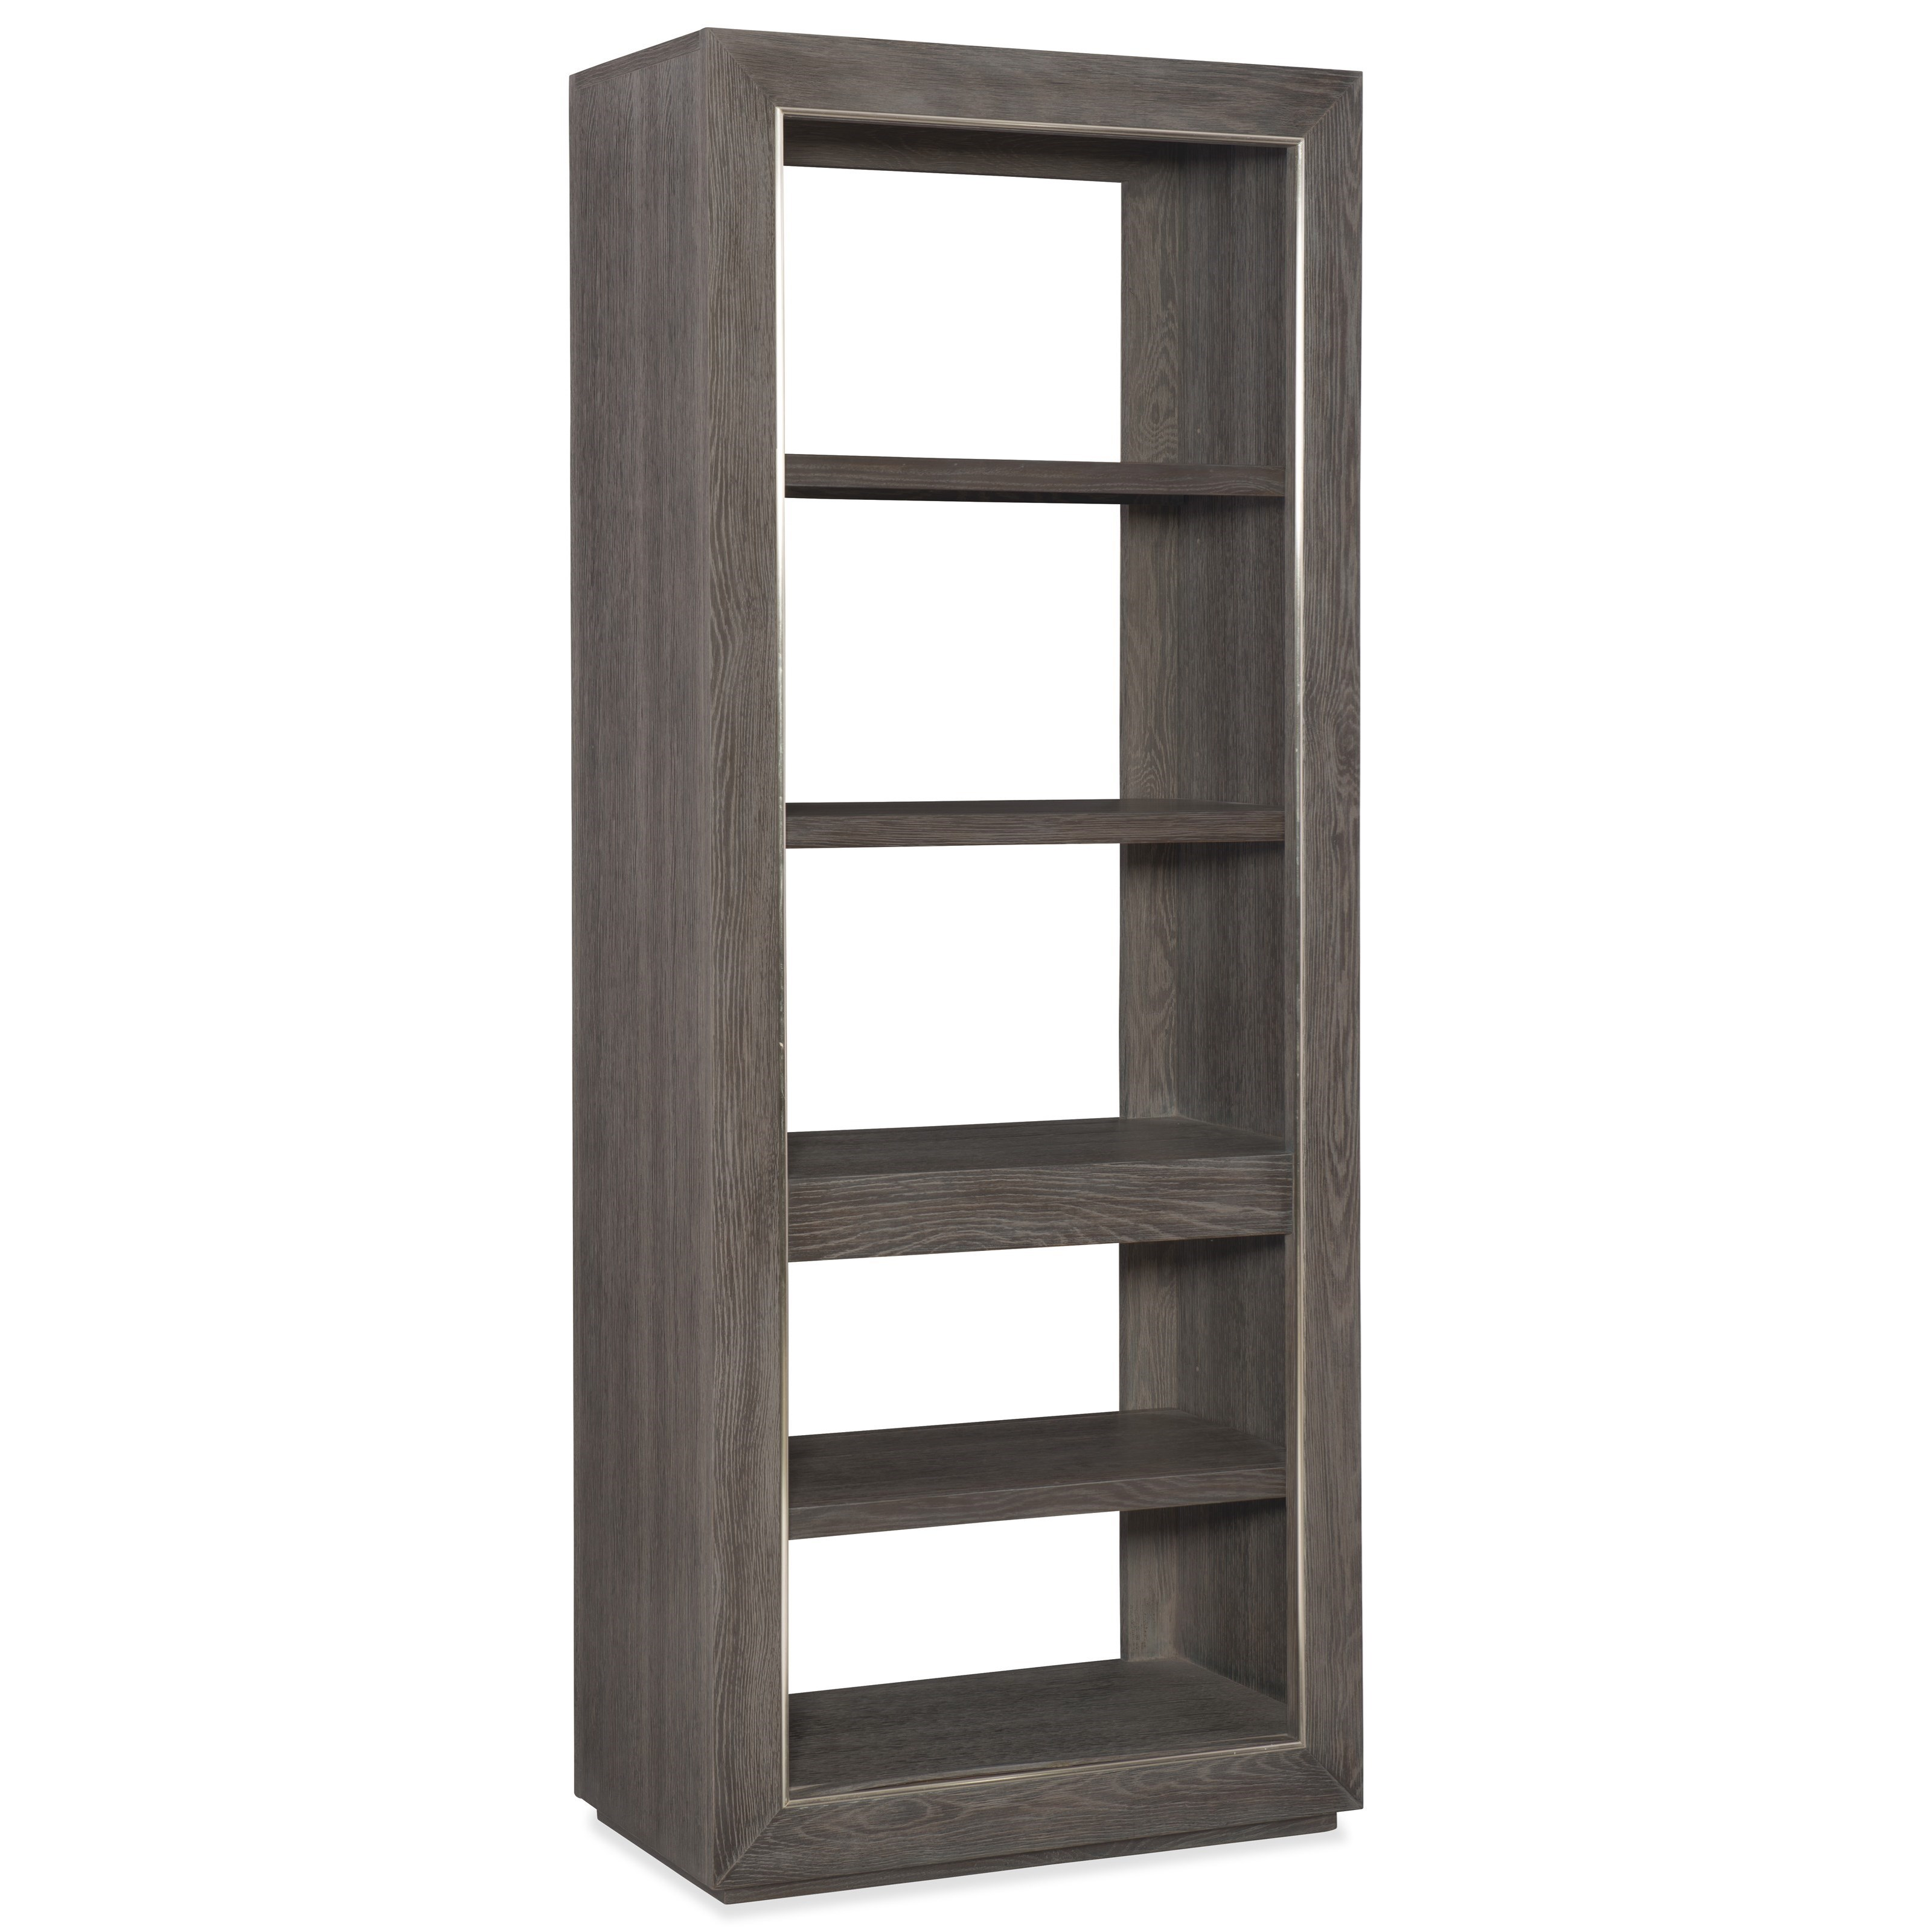 Etagere with Adjustable Shelves